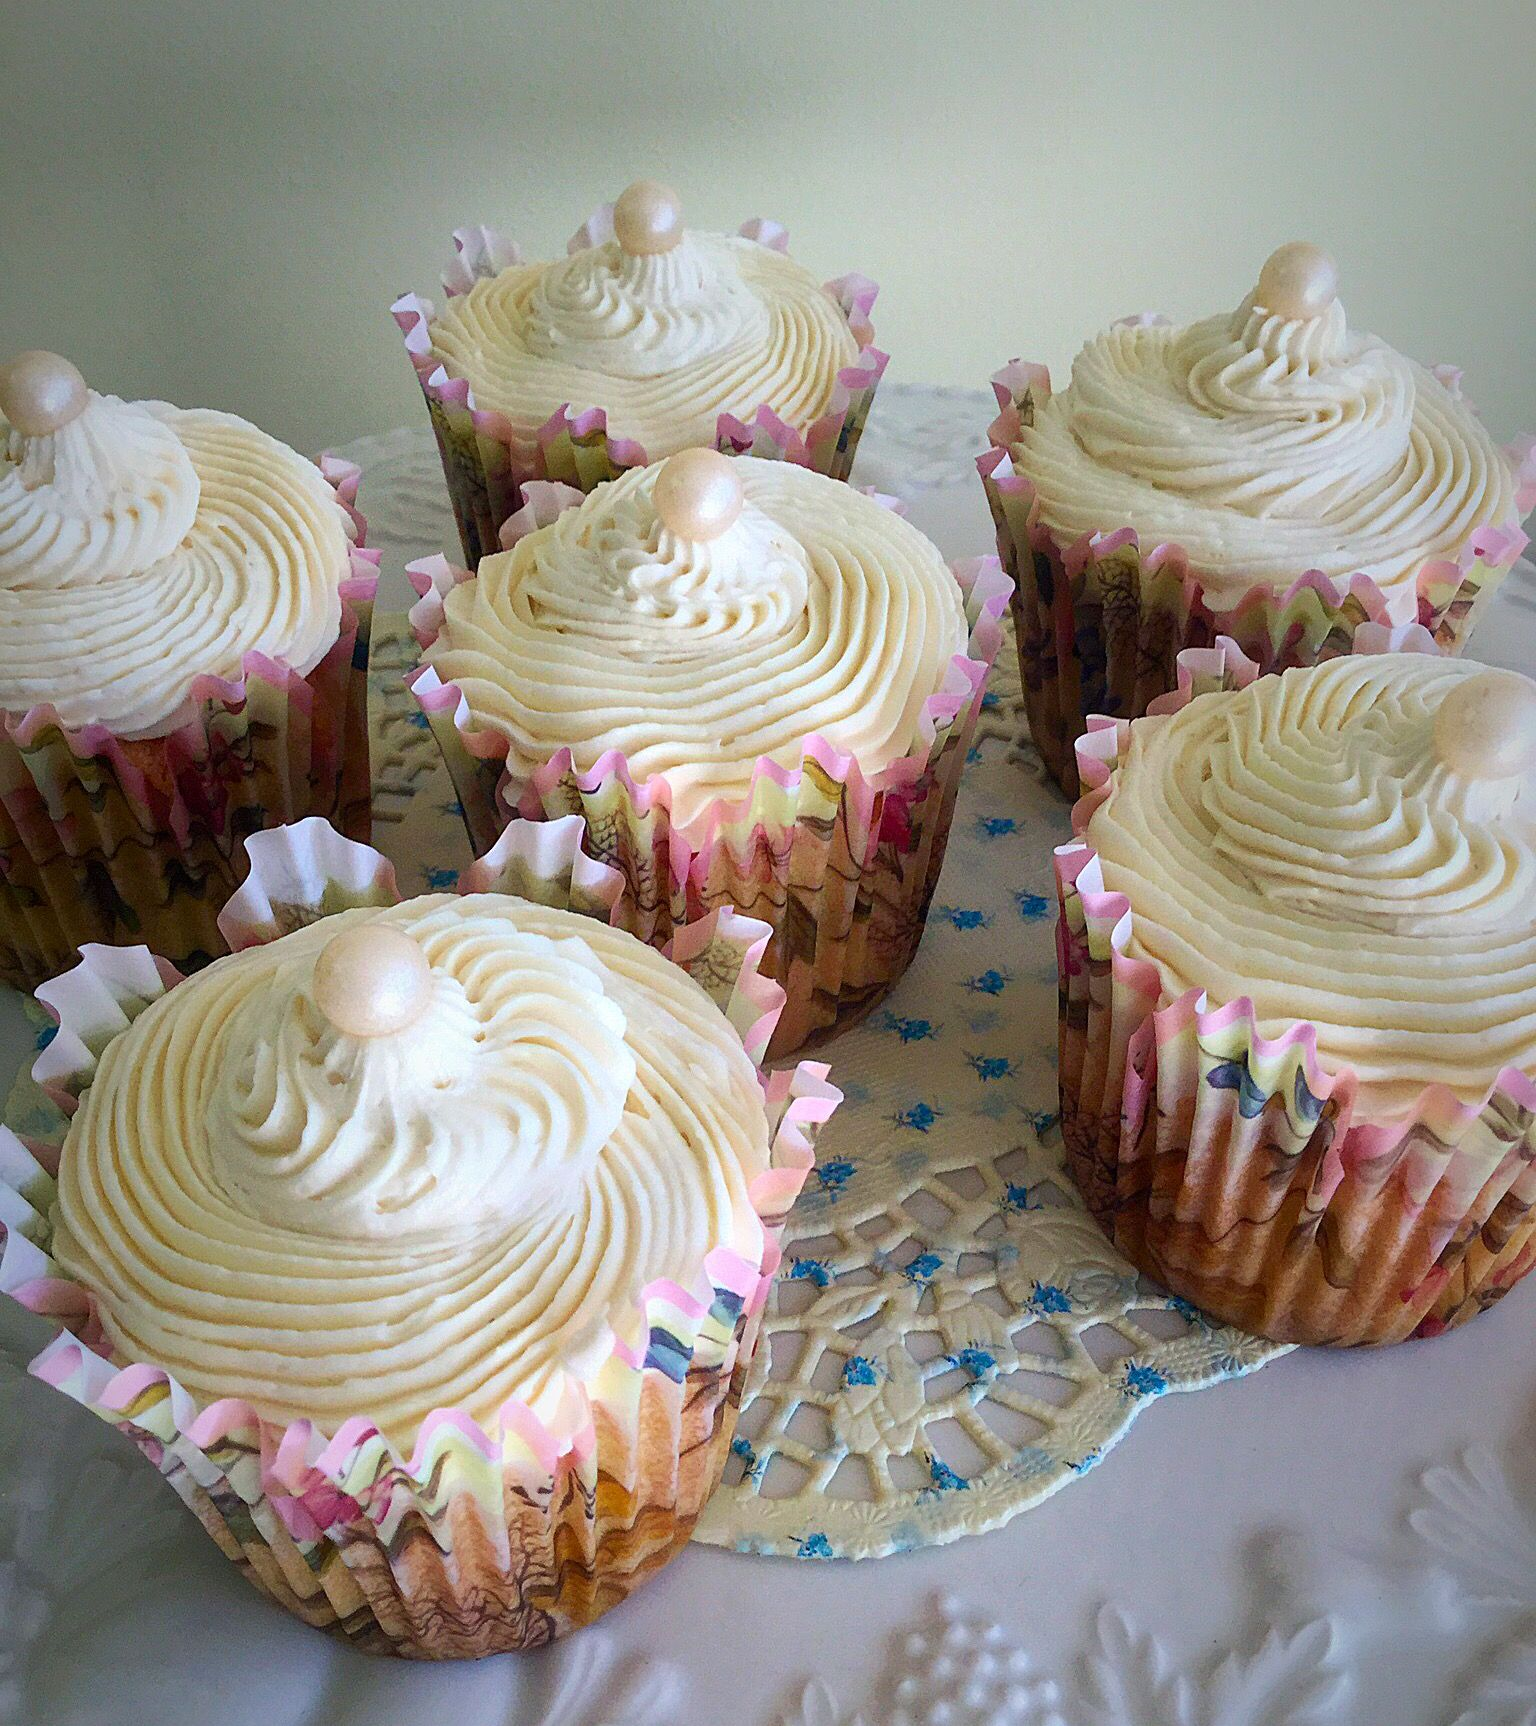 It's Sunday, time for a little treat?? So how about these Vanilla Bean Cupcakes? Moist, vanilla flavoured sponge, topped with the lightest, most dreamy vanilla buttercream and a pearl, because you are special. Look how pretty these cupcakes are. So beautiful, that I almost called them antique Vanilla Bean Cupcakes, although I thought better of … Continue reading Vanilla Bean Cupcakes